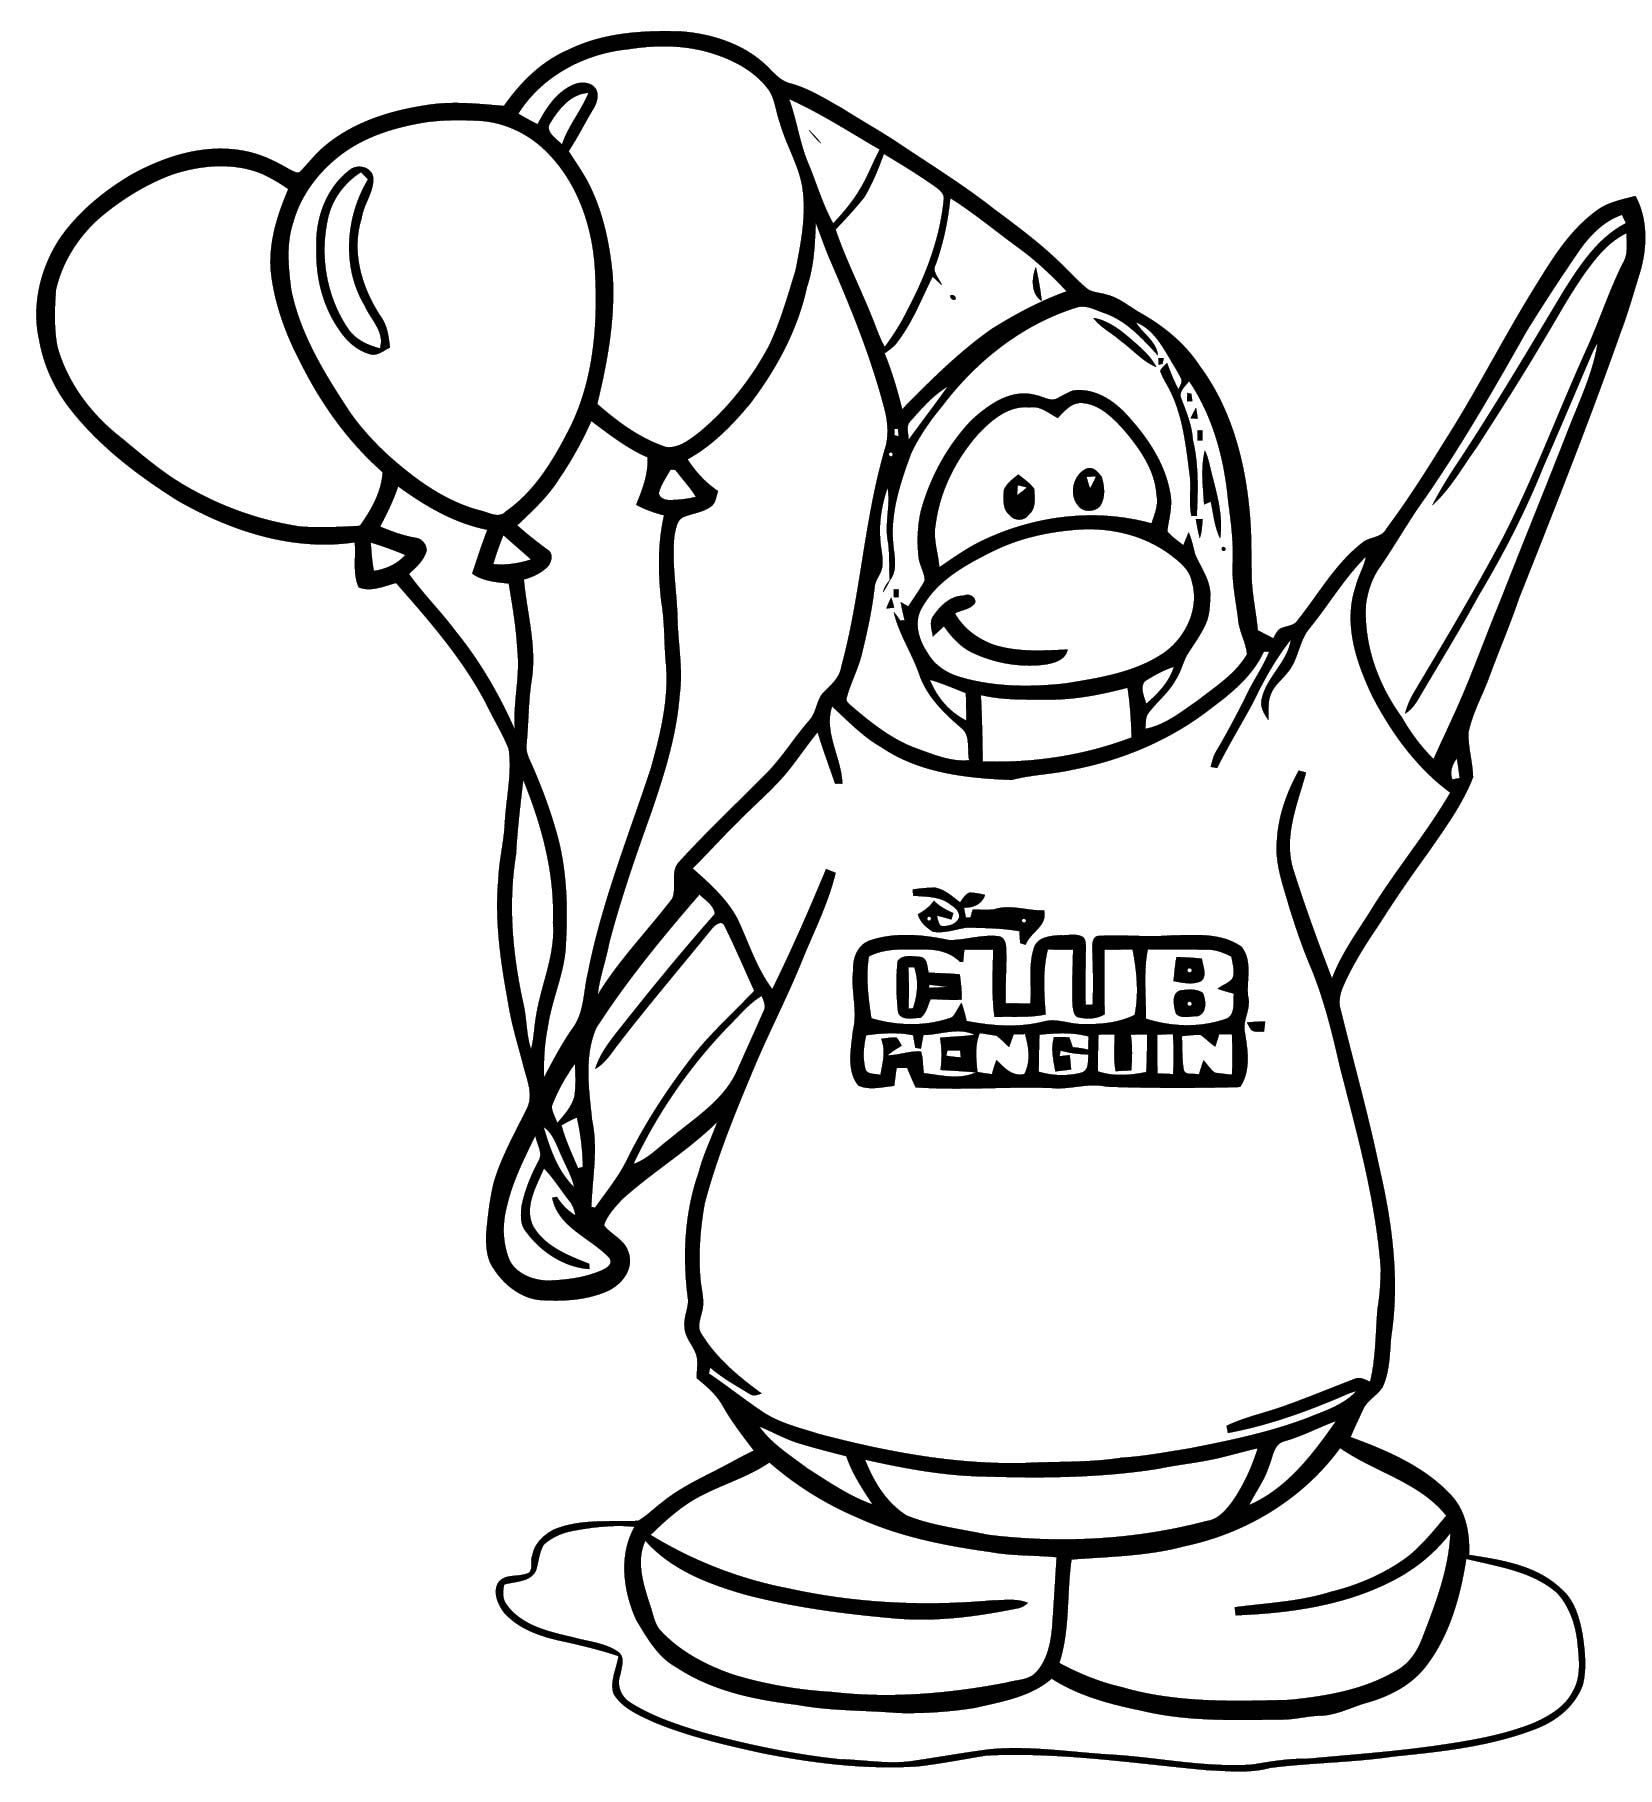 Party Penguin Coloring Page